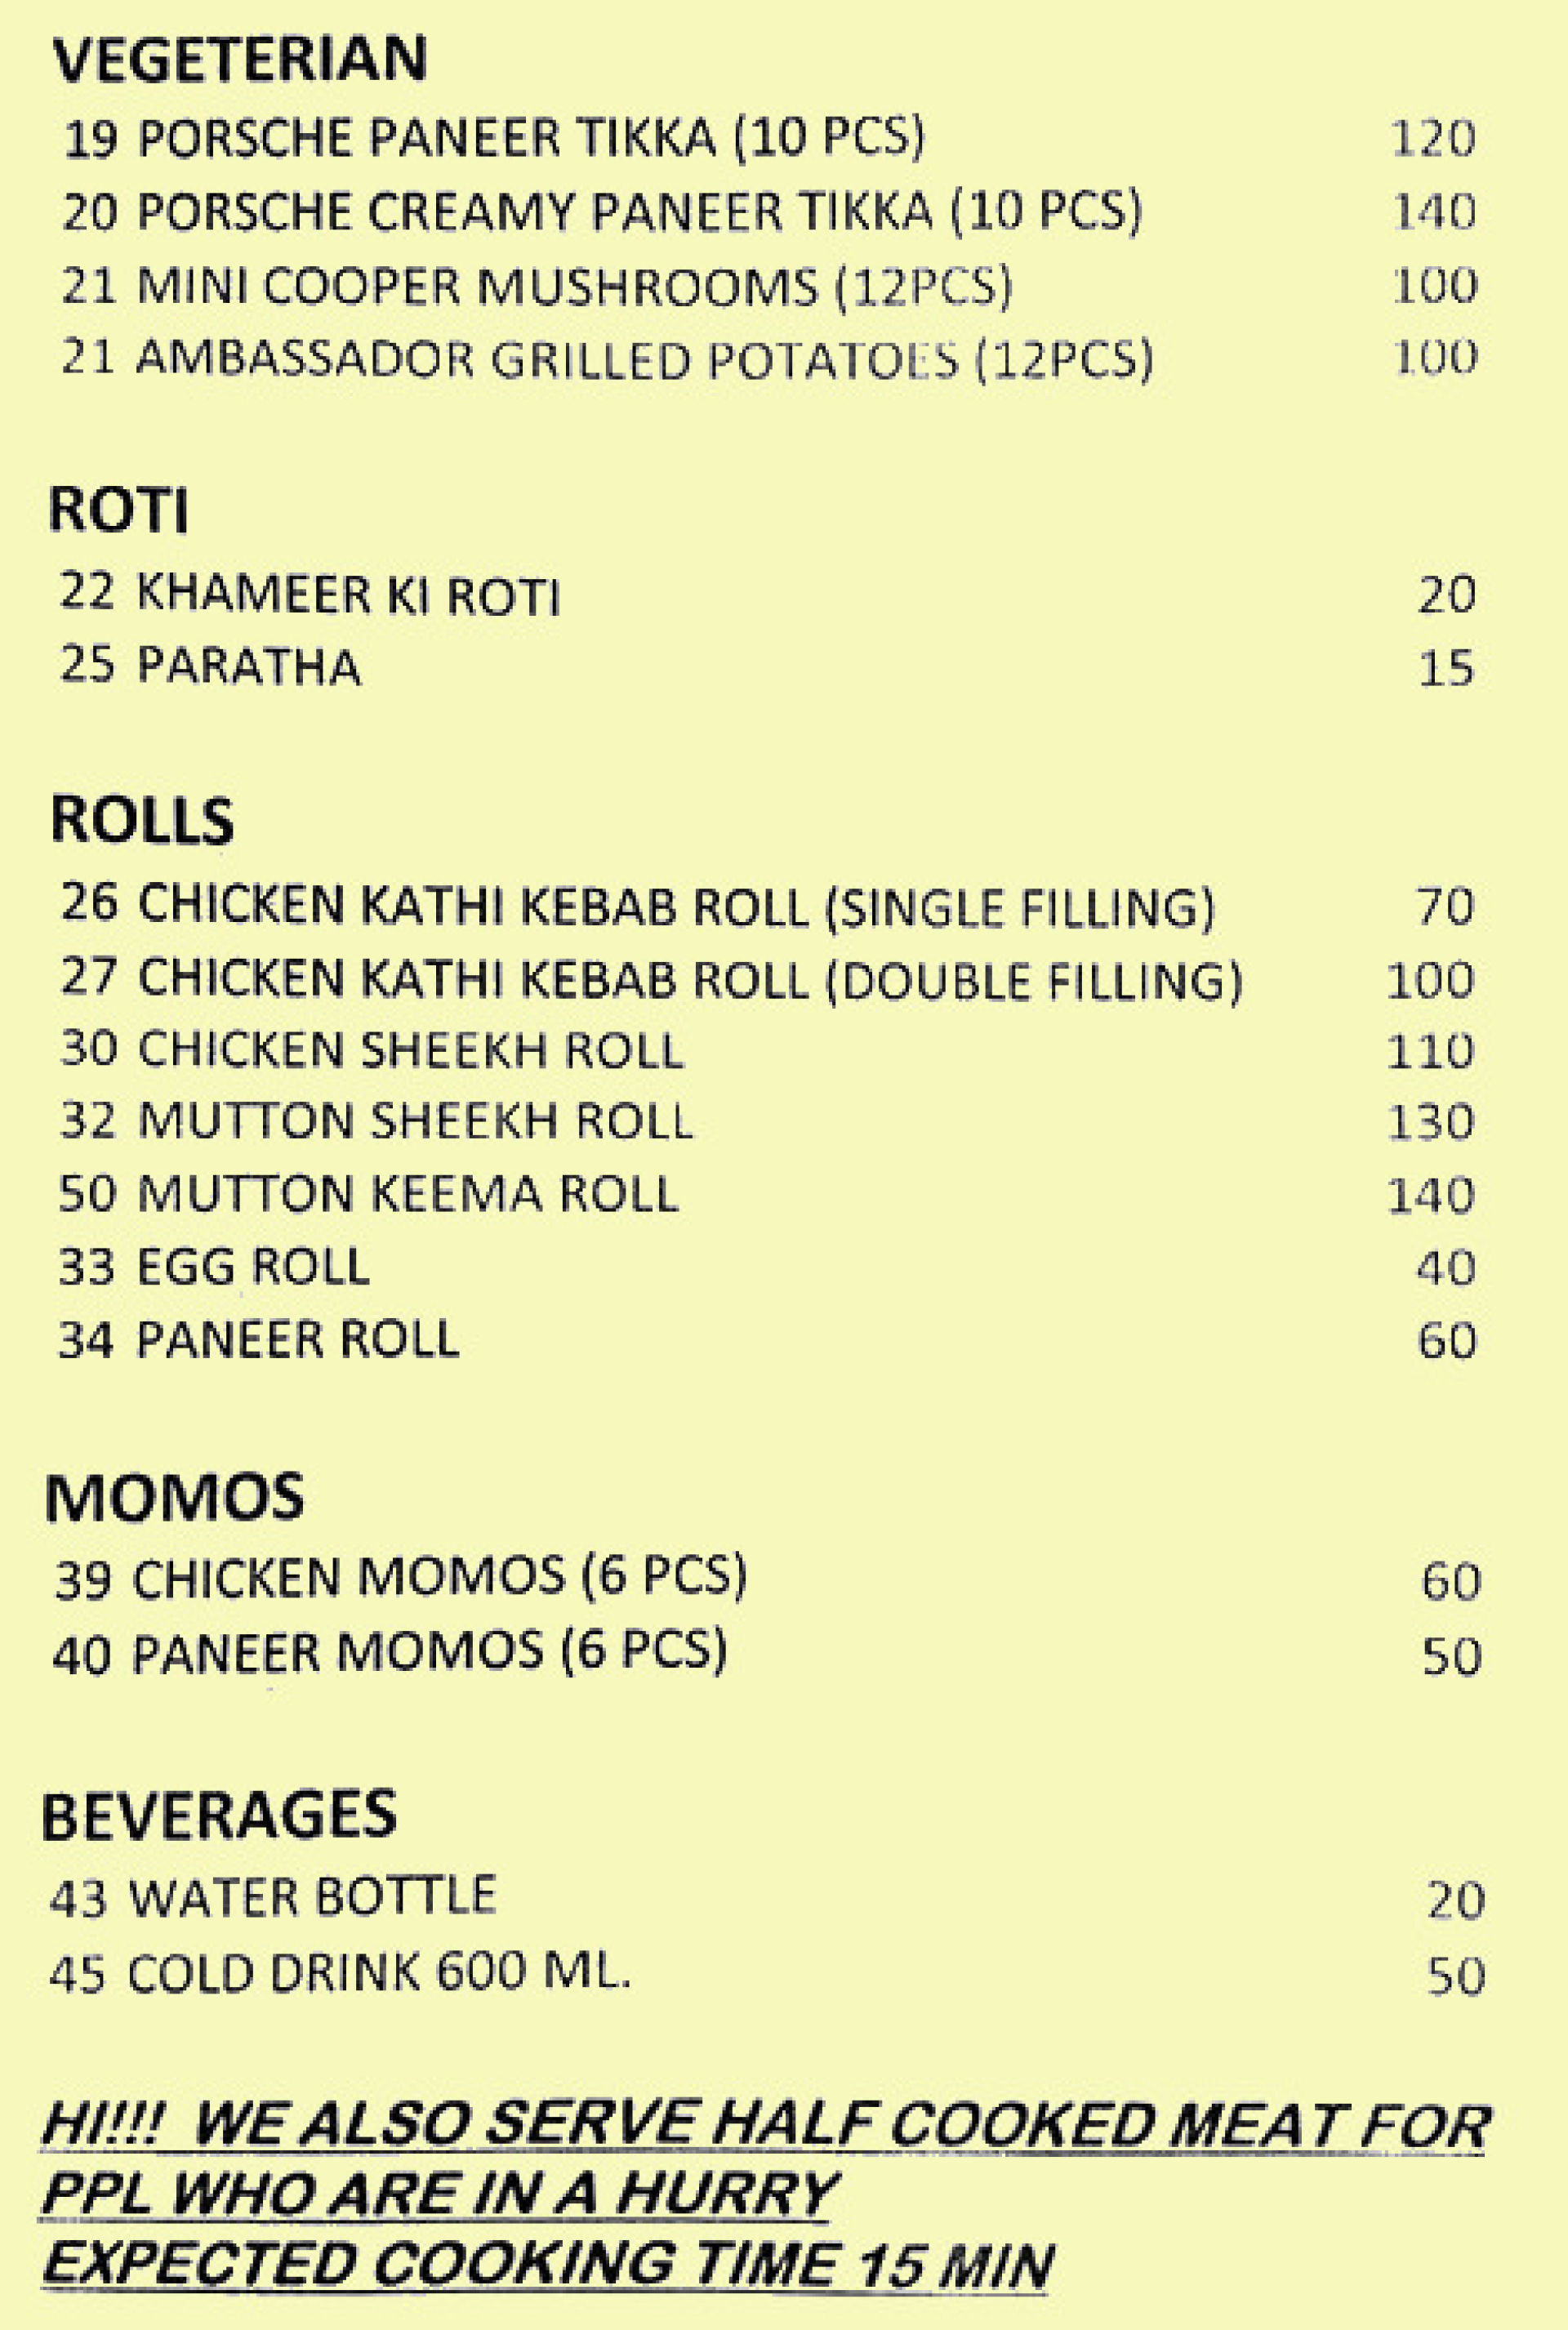 Garage Grill Nibm The Garage Grill Wanowrie Pune Pune Restaurants Menu And